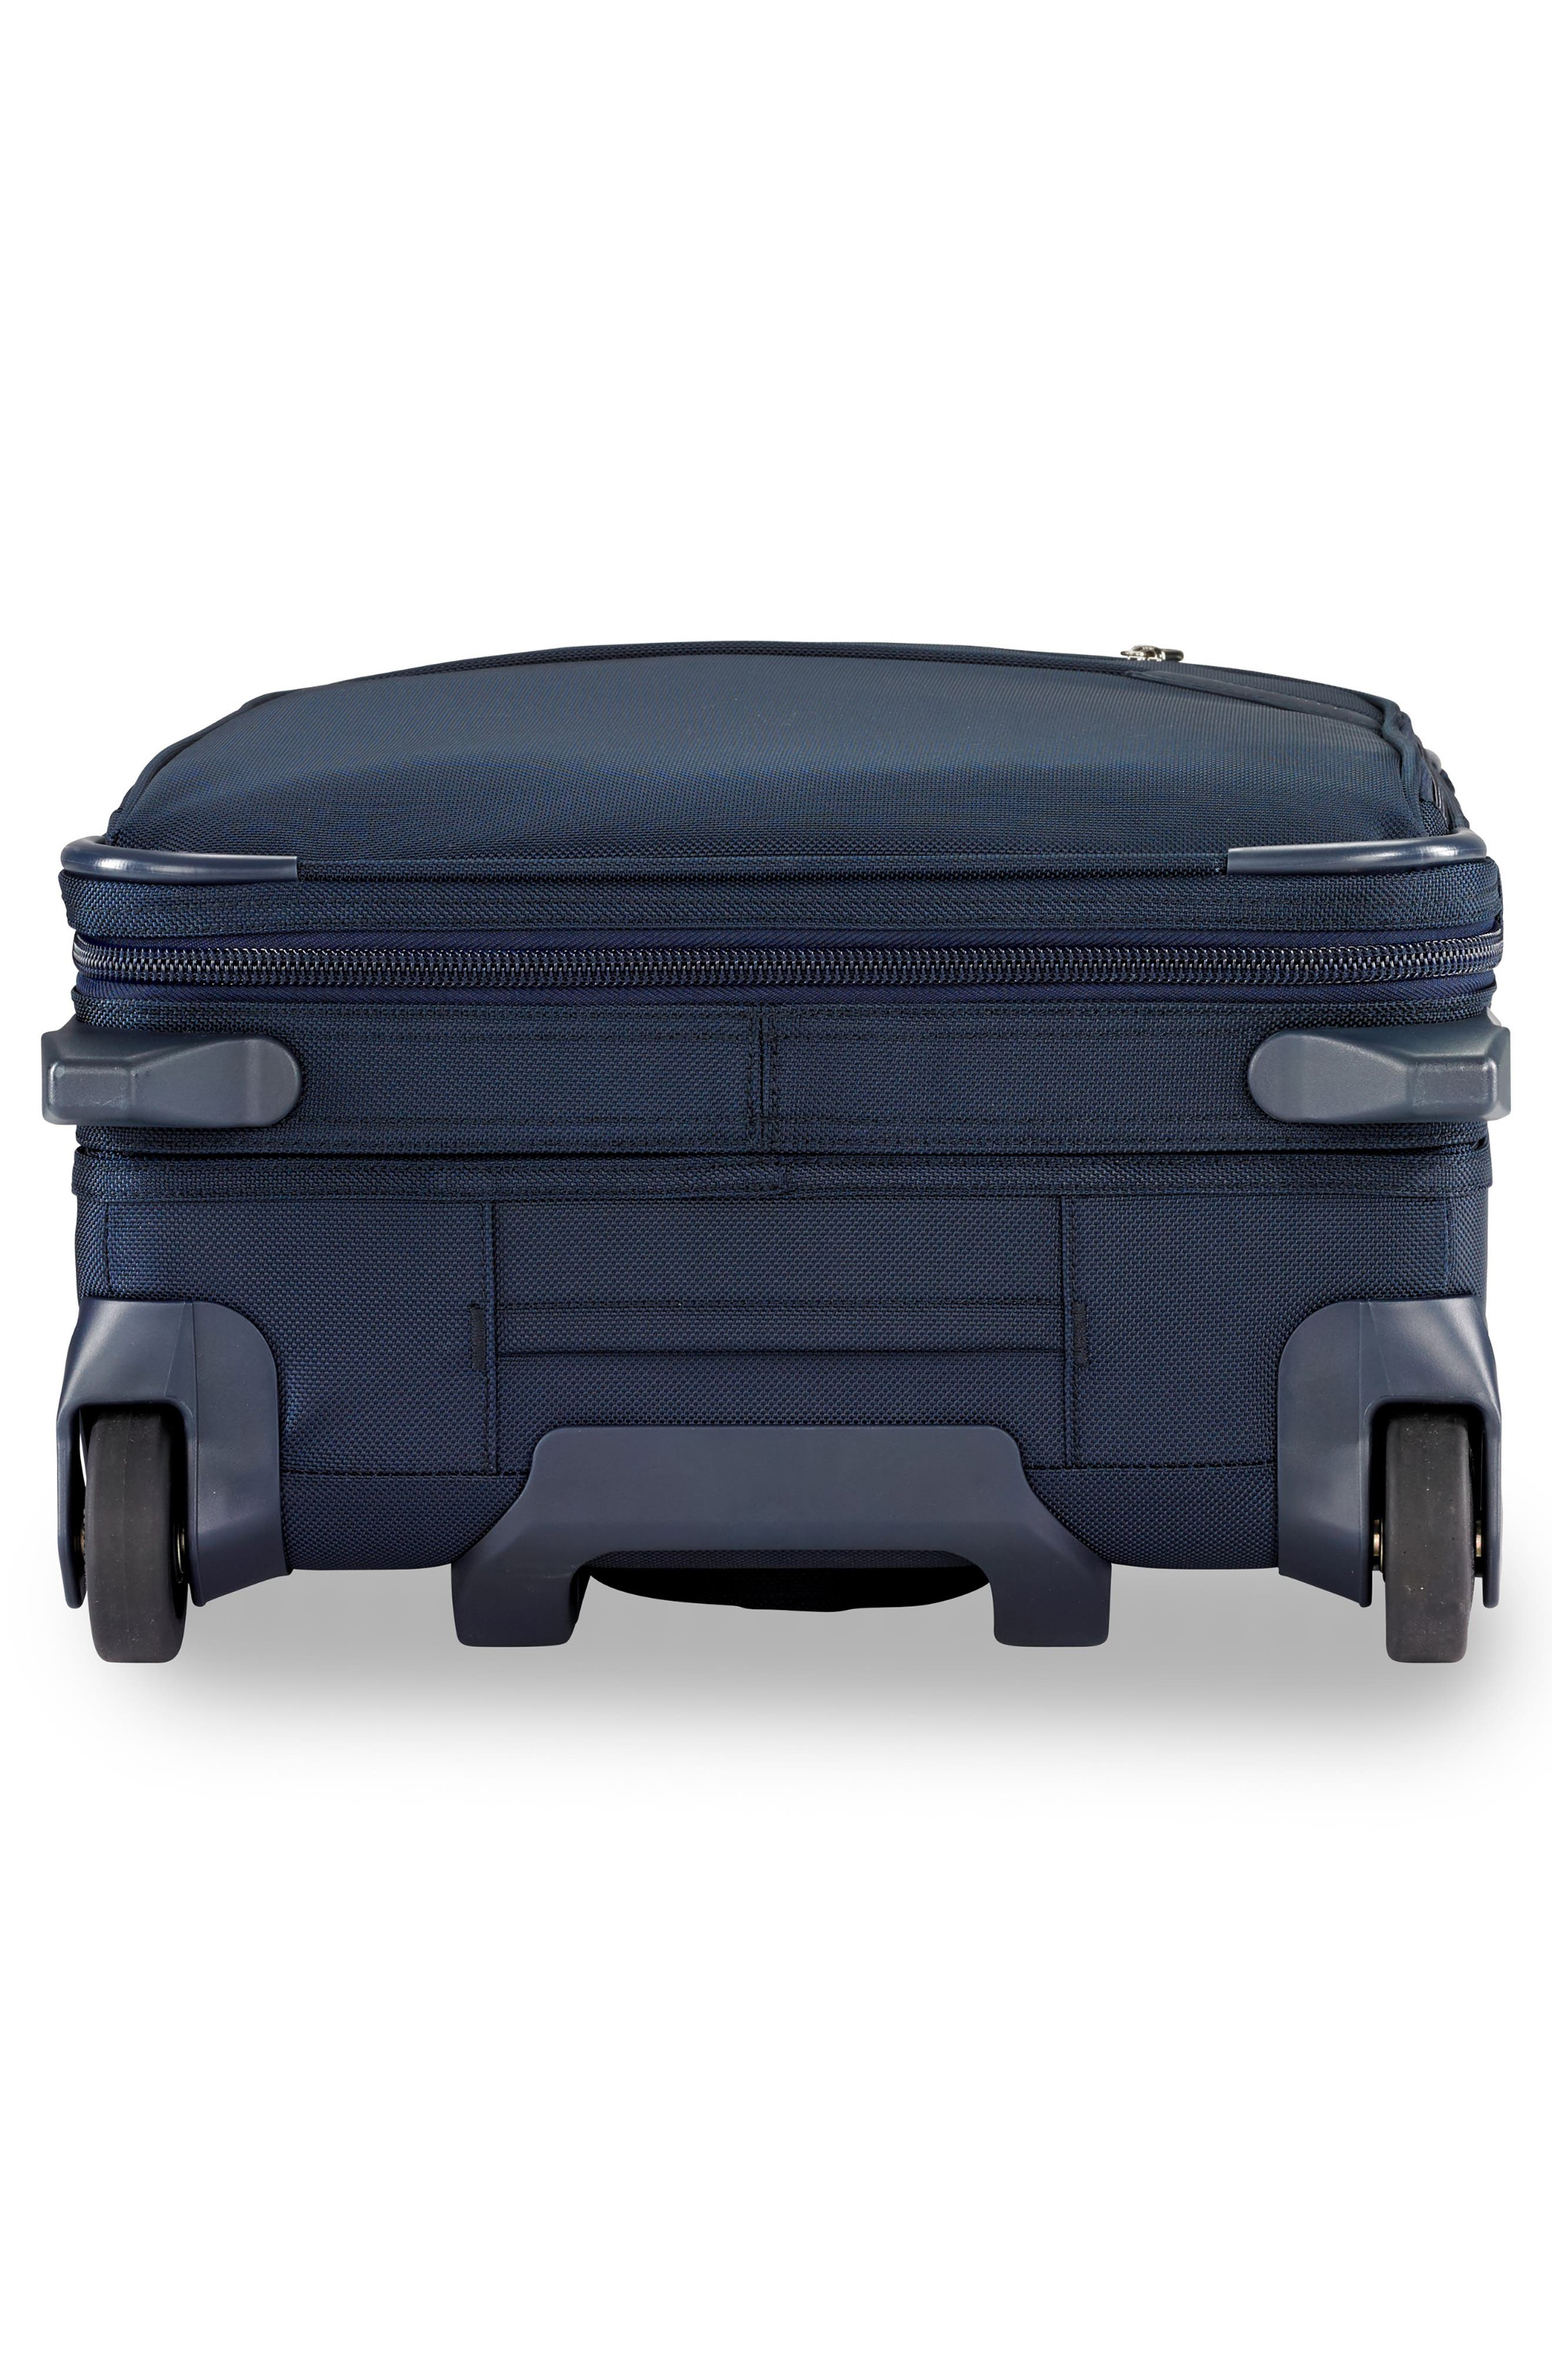 21-Inch Baseline Widebody International Rolling Carry-On,                             Alternate thumbnail 9, color,                             NAVY